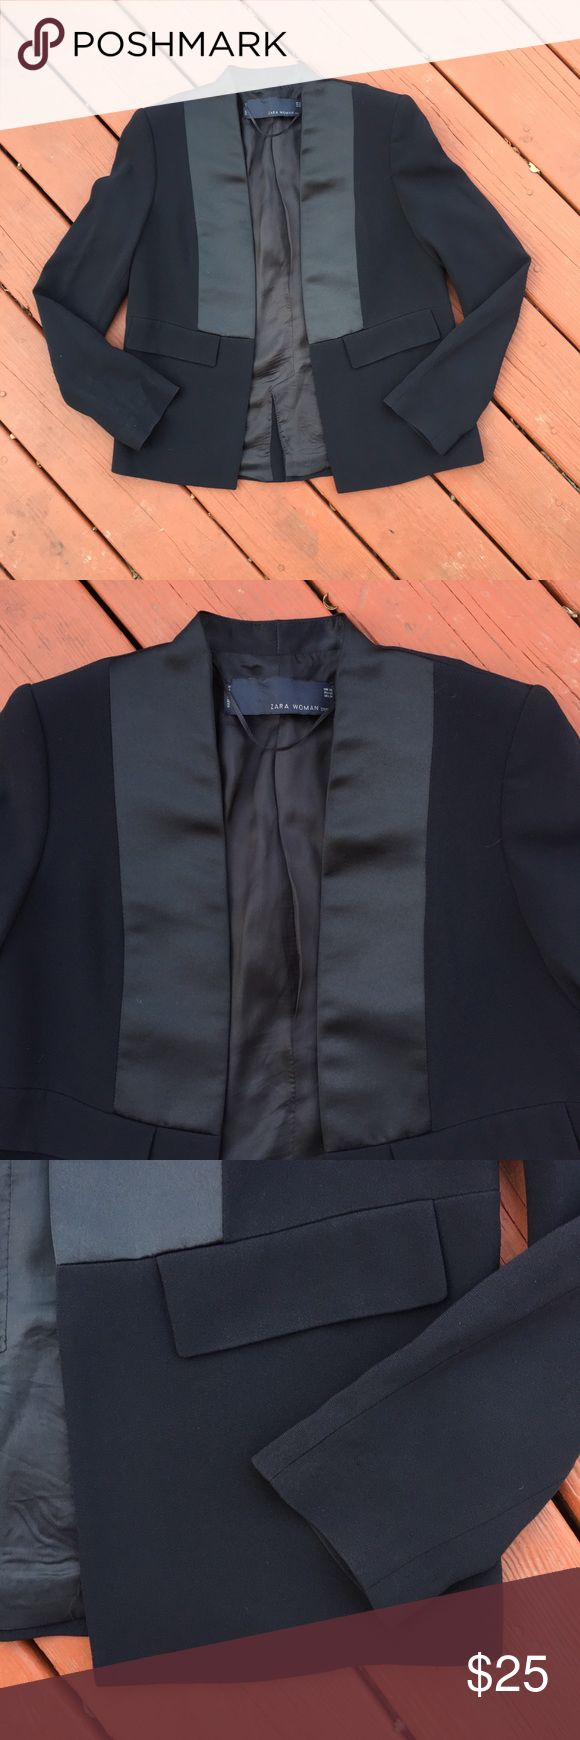 Zara Modern Tuxedo Blazer Zara Modern Tuxedo Blazer in excellent used condition. Clean lines and a menswear inspired design make this the perfect chic and modern Blazer for both casual and formal occasions! Made in Spain. Zara Jackets & Coats Blazers